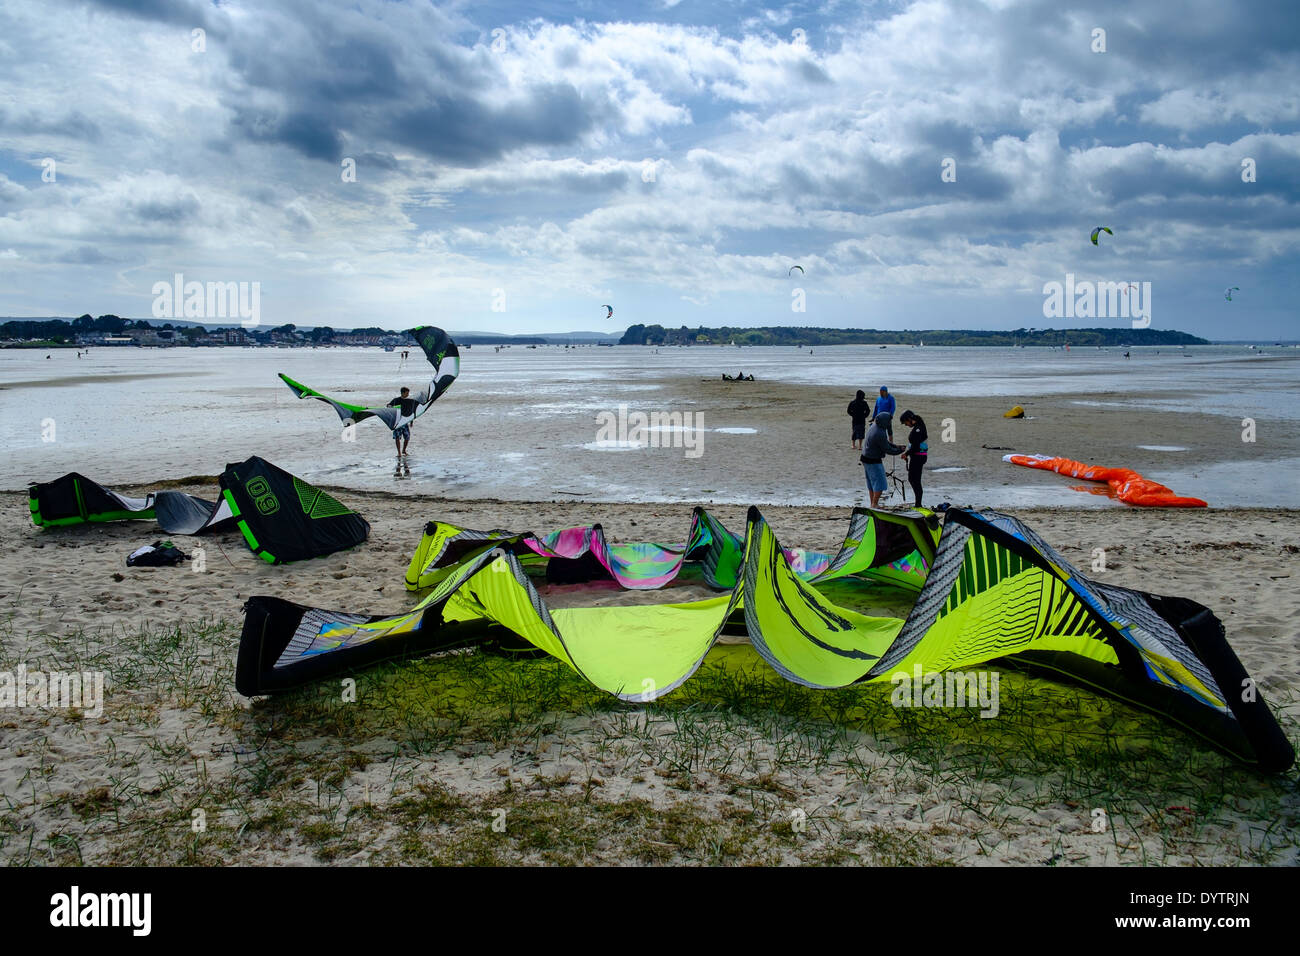 Kite surfers set up power kites at Poole Harbour. Picture by Julie Edwards - Stock Image